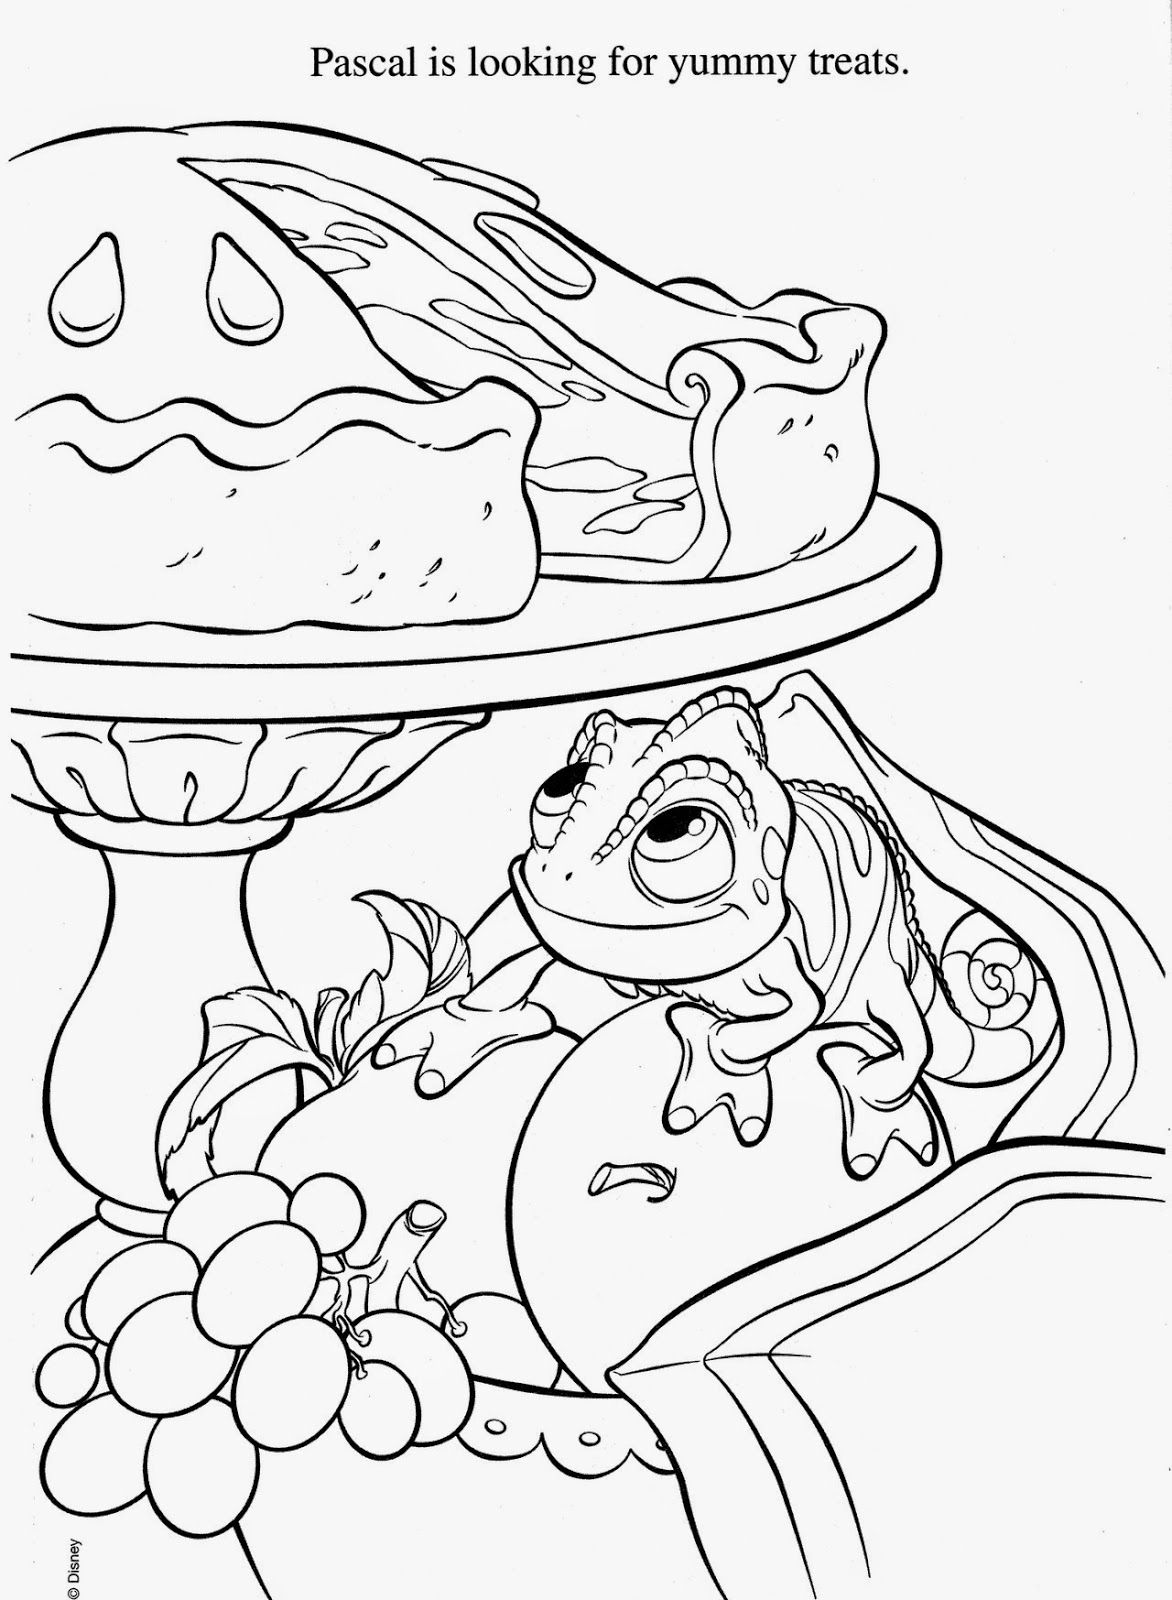 Tangled Pascal Coloring Pages Download Tangled Coloring Pages Disney Coloring Pages Coloring Pages